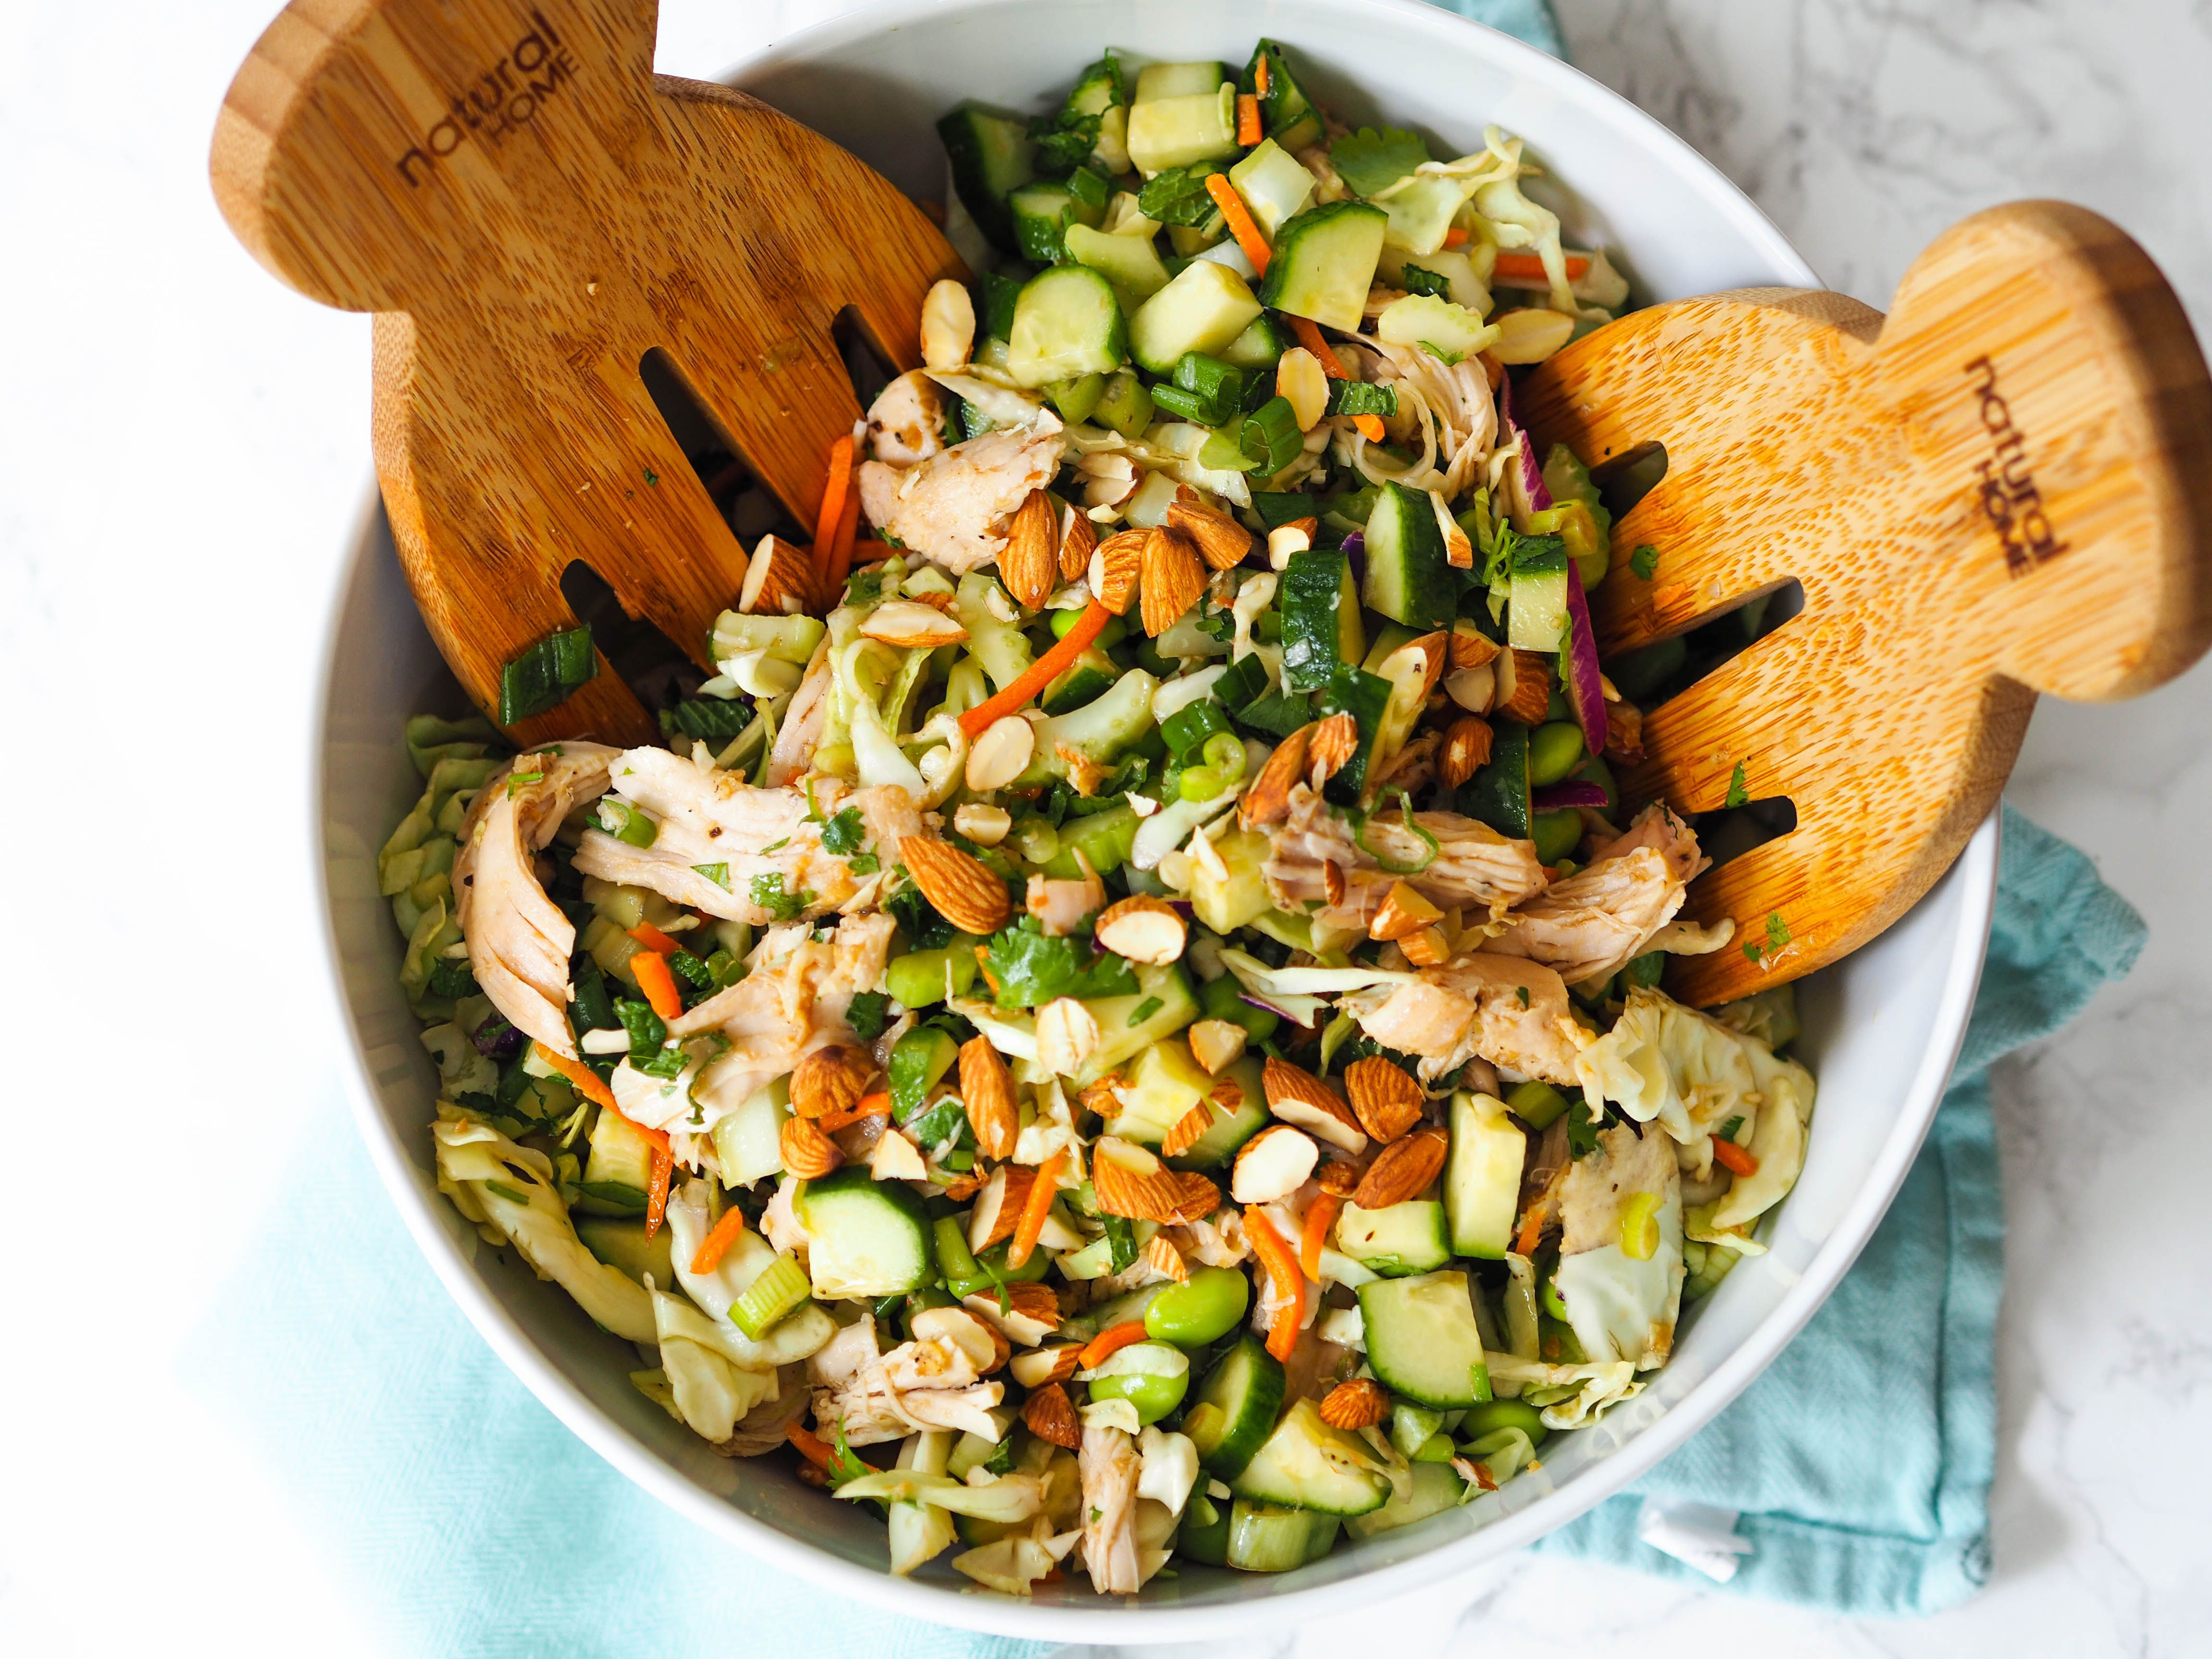 Low-Carb Asian Chopped Salad Recipe With Garlic-Ginger Chicken